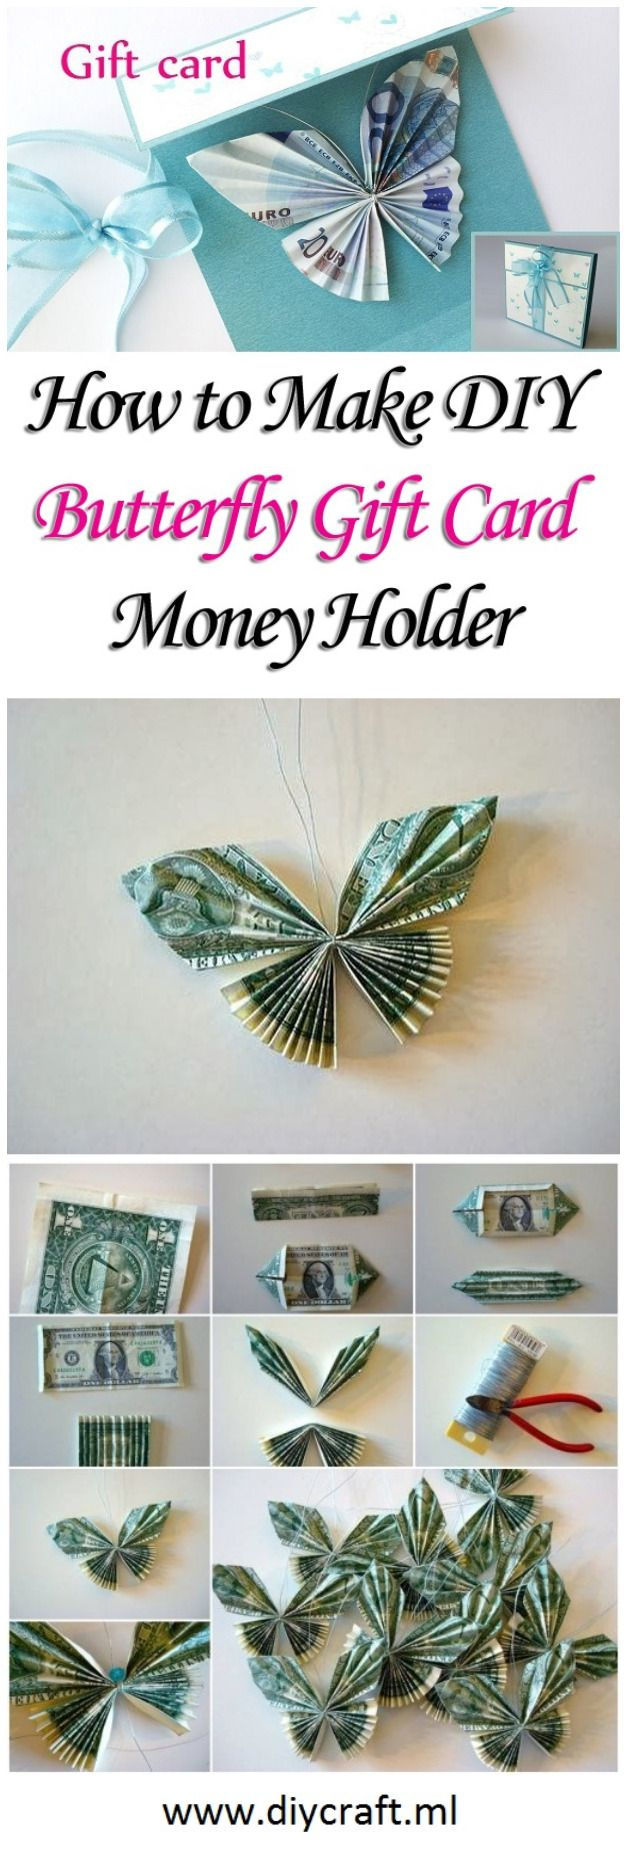 Make DIY Butterfly Gift Card Money Holder                                                                                                                                                     More